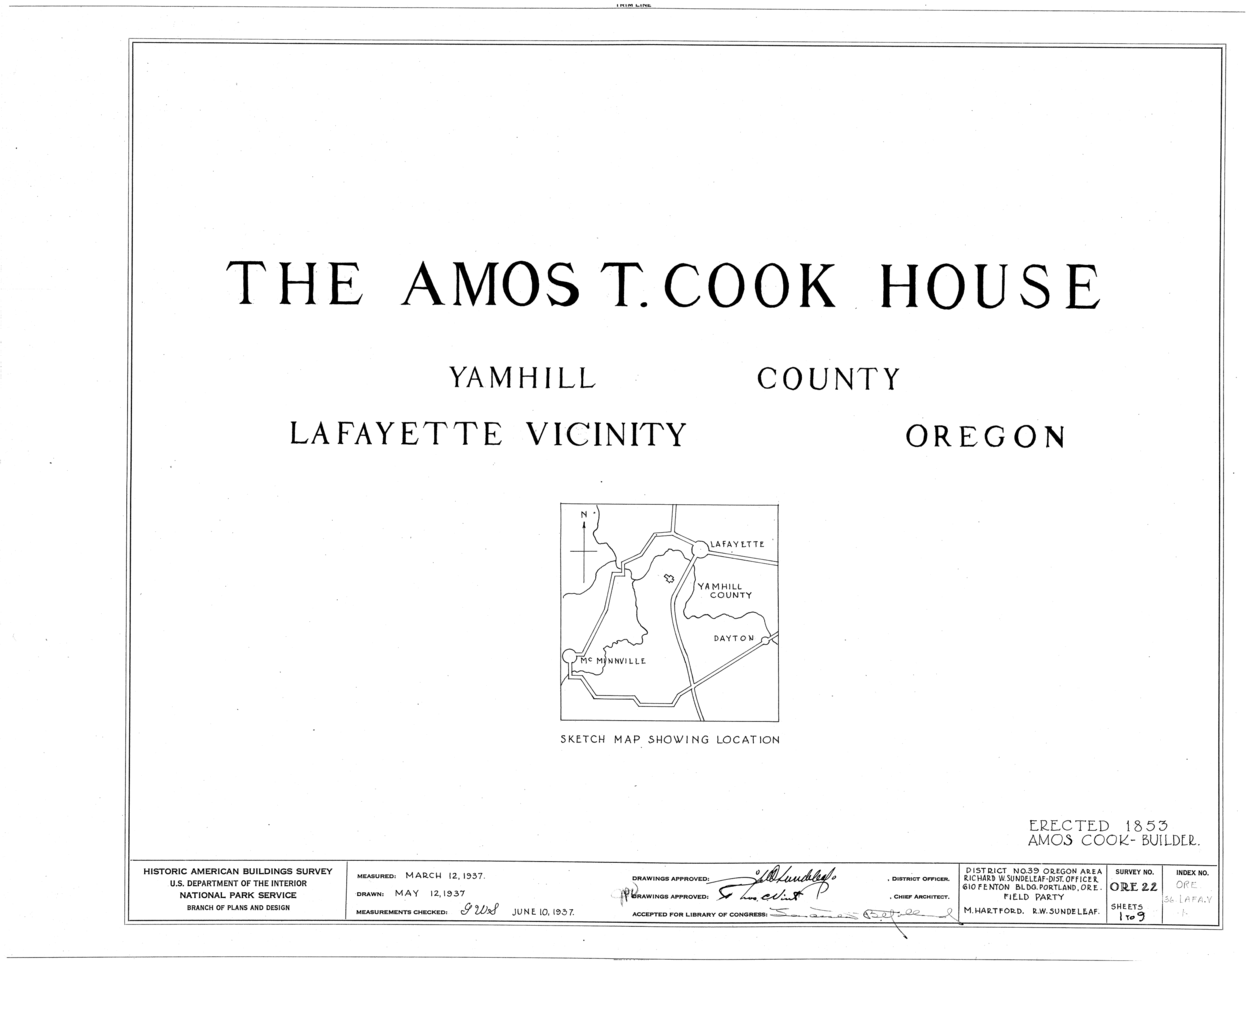 yamhill dating Gay cruising in yamhill county within essentially the most complete database on gay cruising in yamhill county (oregon) found 2, updated on 2018.